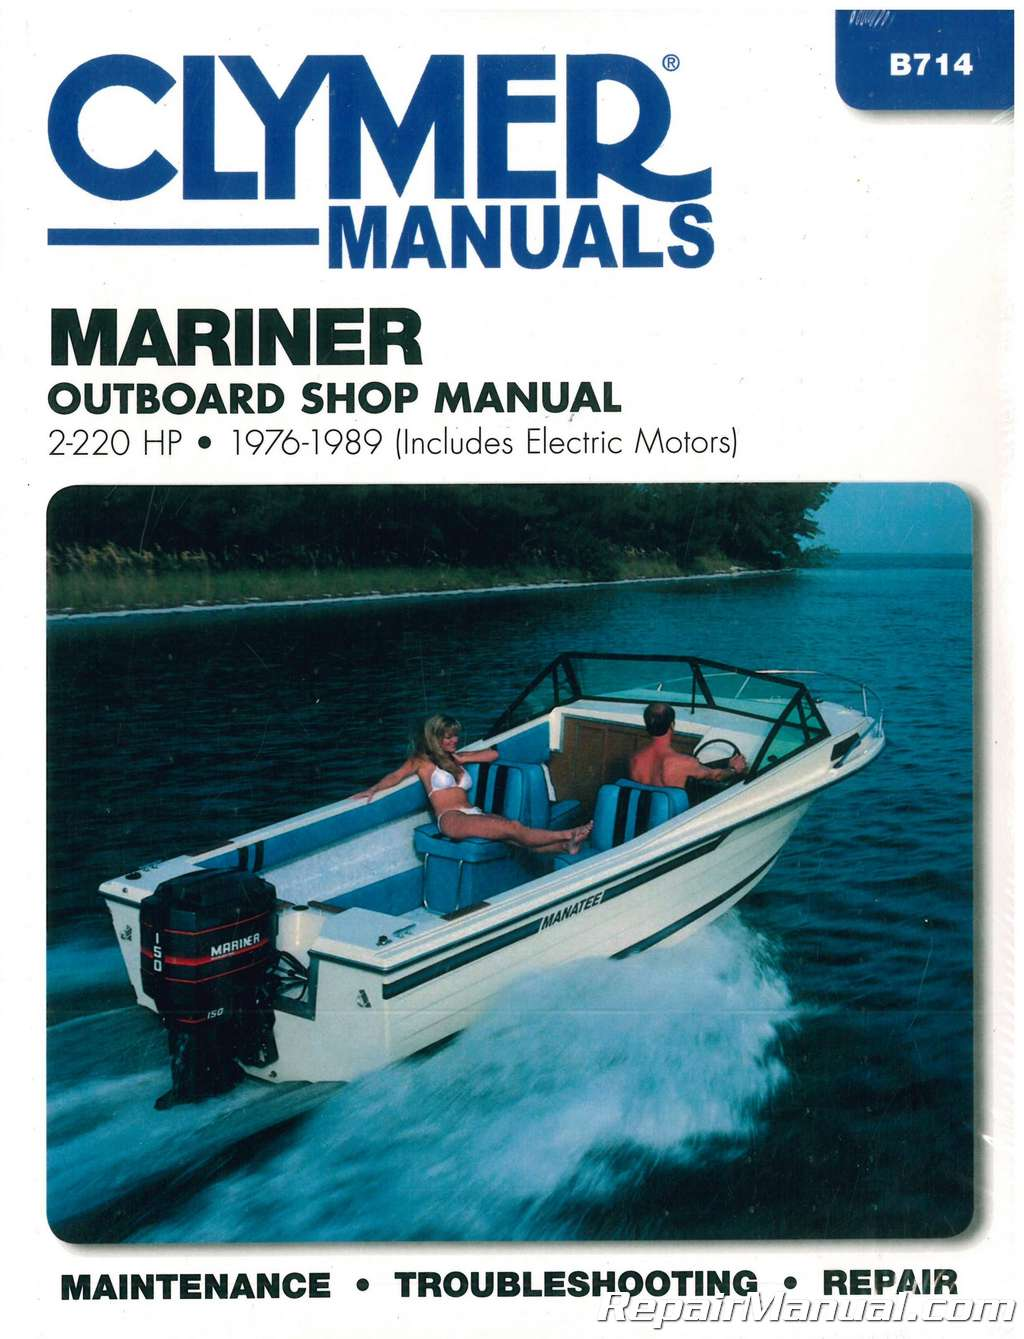 1976 1989 mariner 2 220 hp outboard boat engine repair manual rh repairmanual com Clymer Freeride clymer marine service manuals